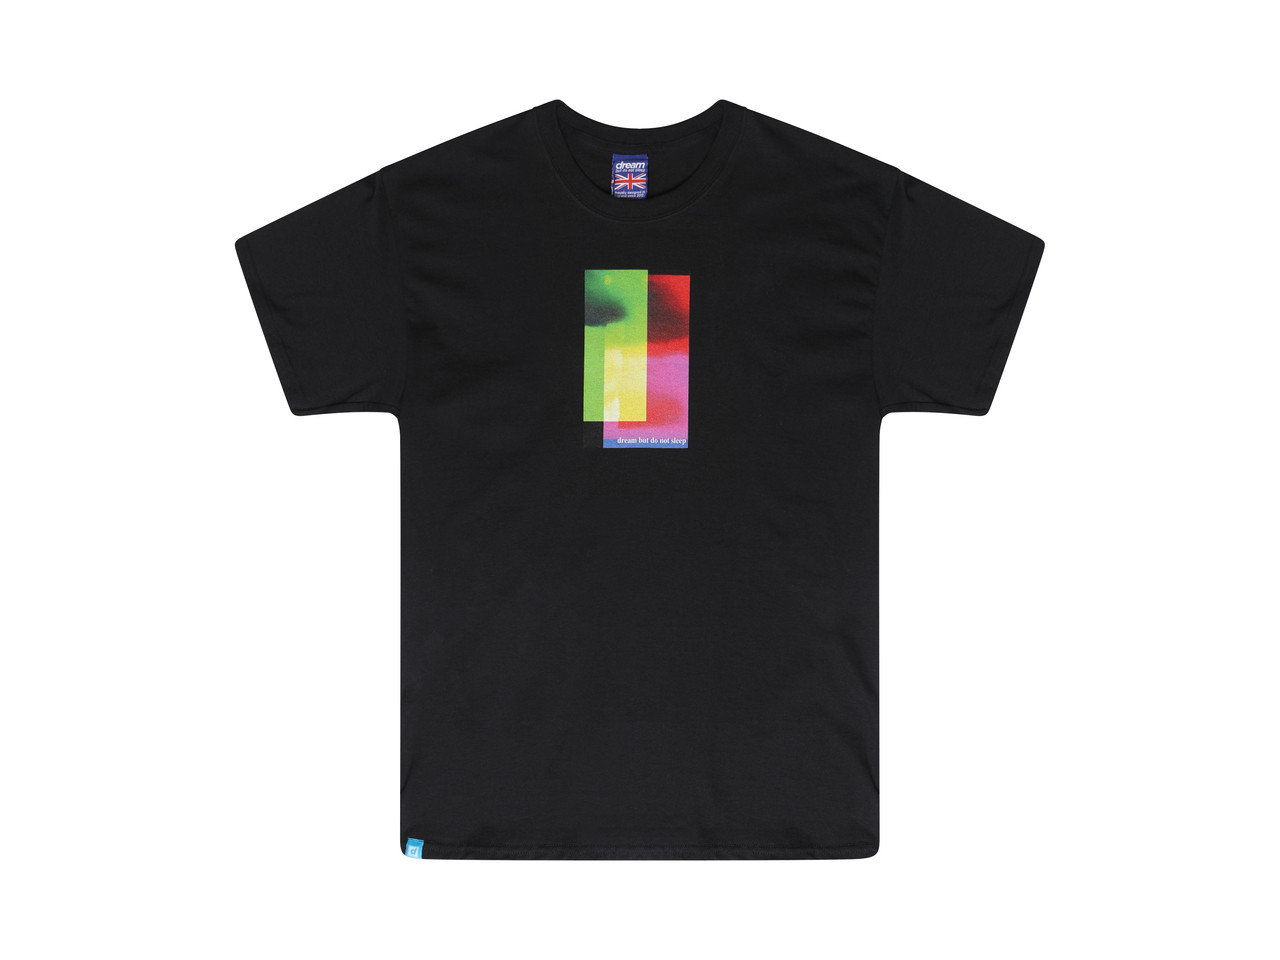 Black Short Sleeved T-shirt With Light Leak Multi-Coloured Photo Print